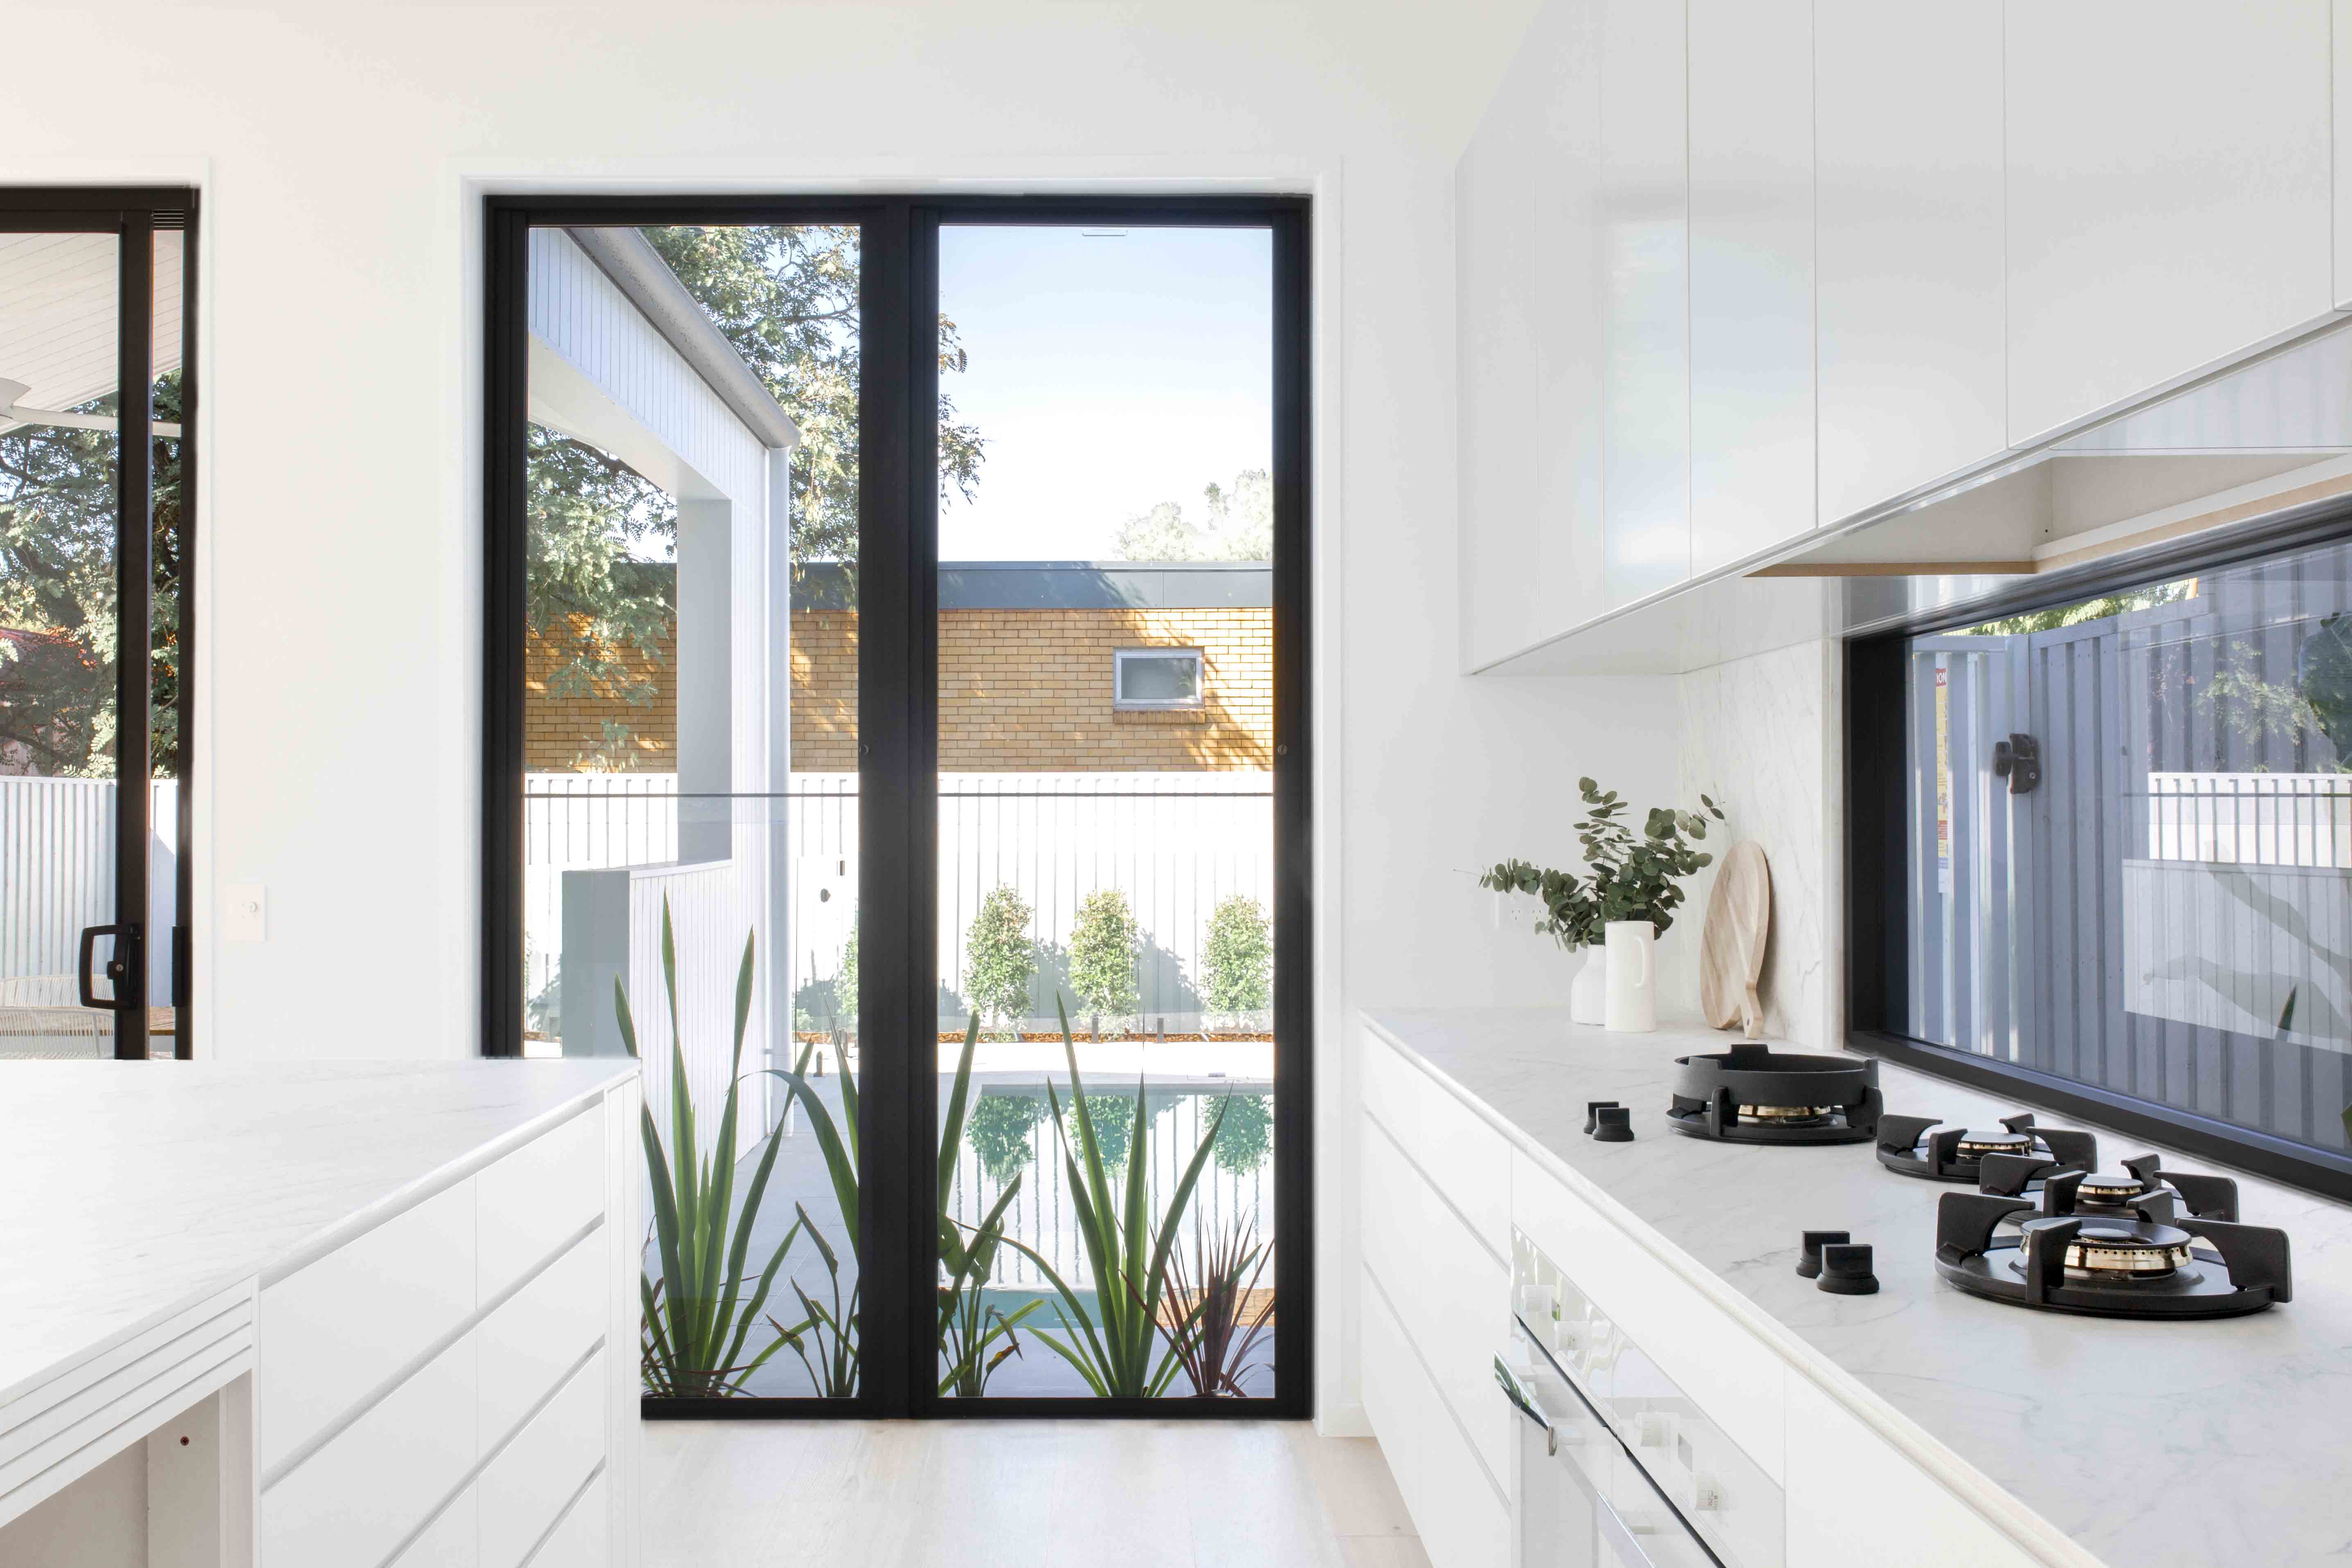 Kalka Clayfield display home porcelain benchtops in the kitchen, looking out to the inground swimming pool